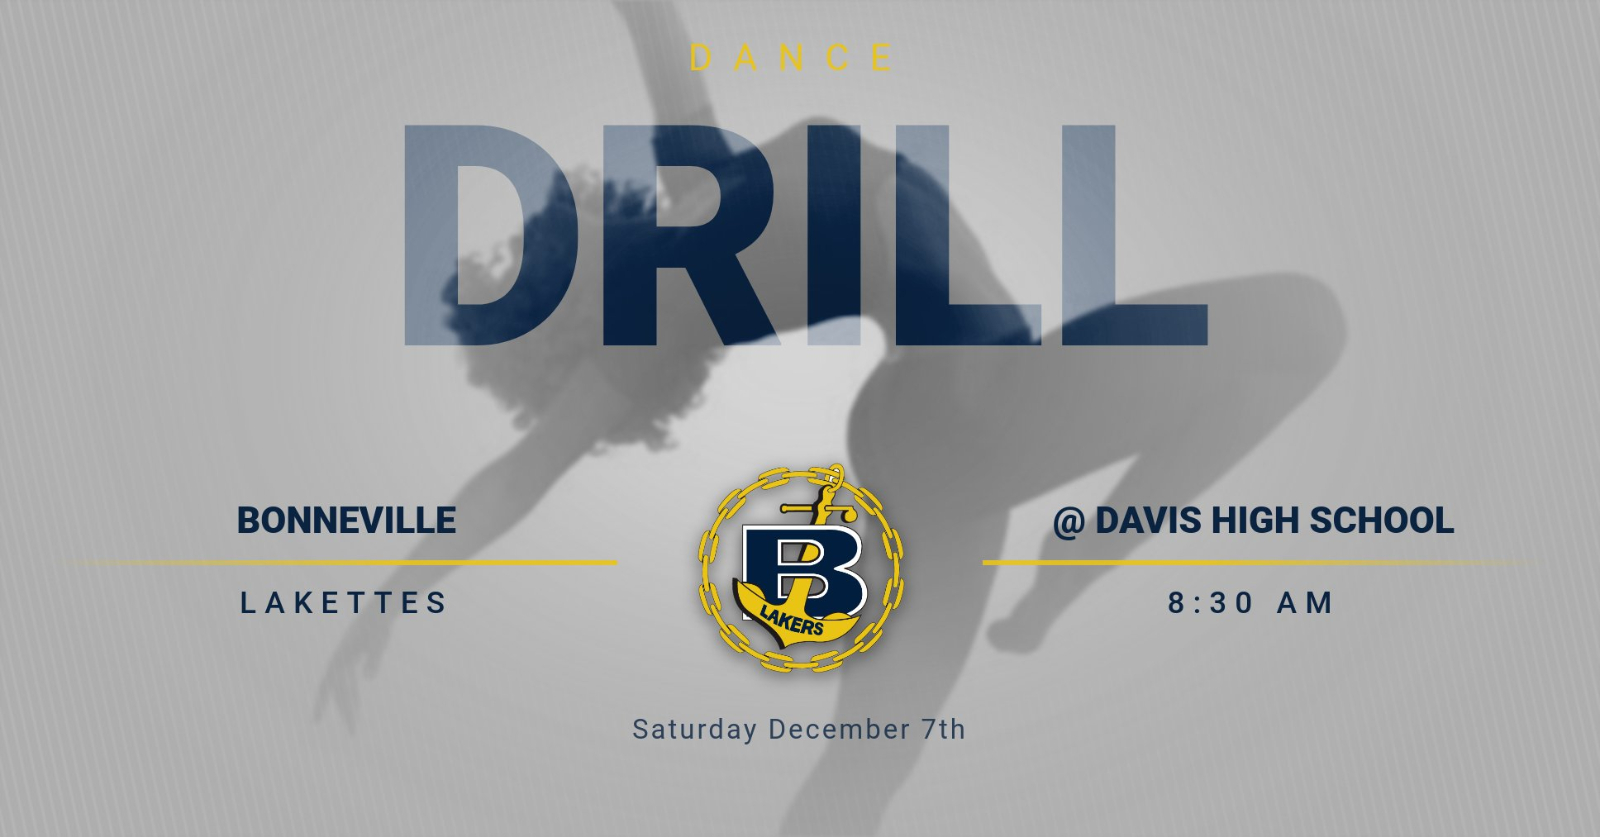 Drill Competition this Saturday @ Davis High